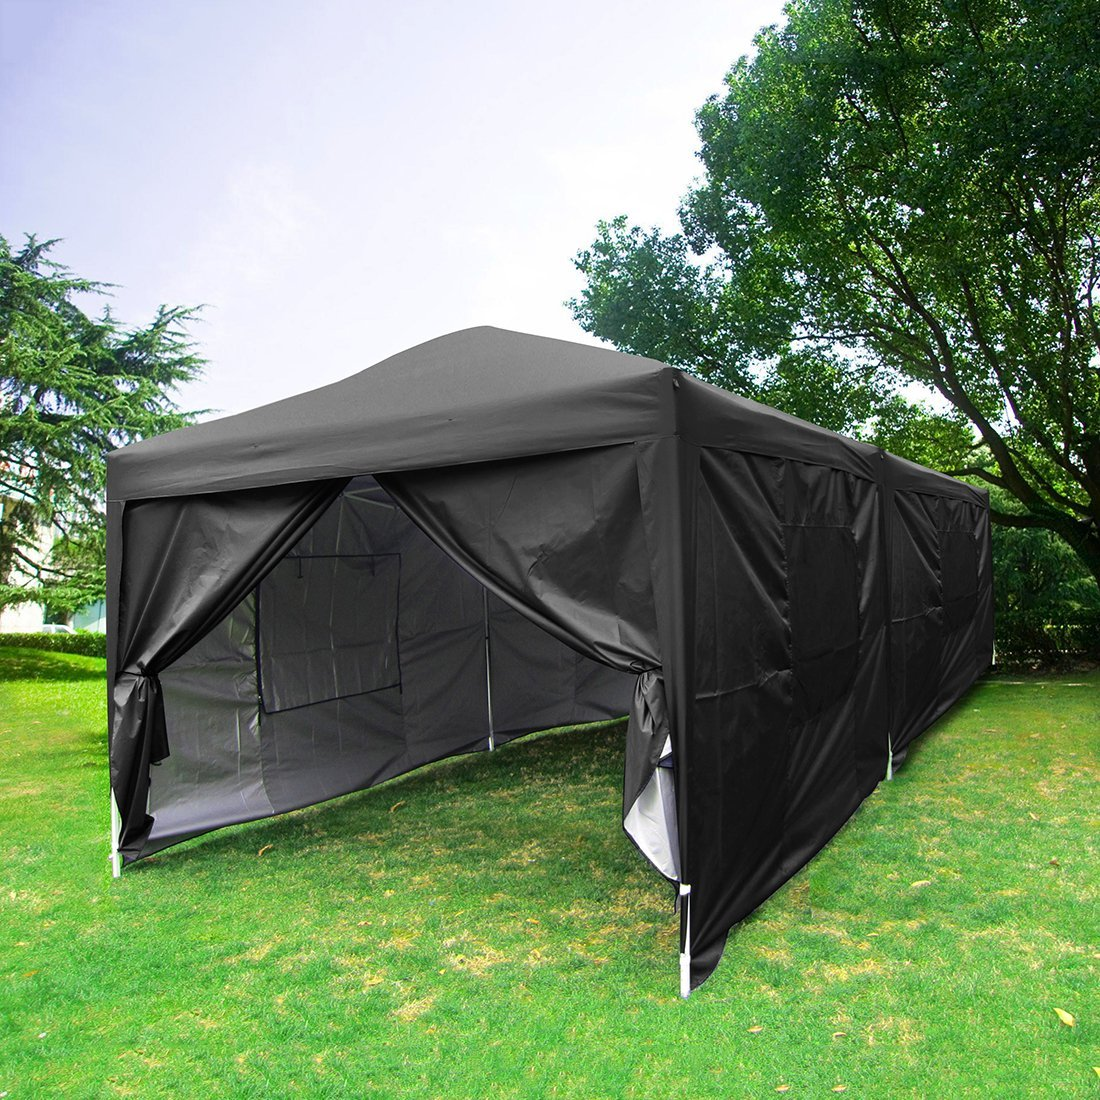 2018 Upgraded Quictent 10x20 EZ Pop Up Canopy Tent Gazebo Party Tent with 6 Sidewalls, Mesh Windows and Wheeled Bag 100%... by ML